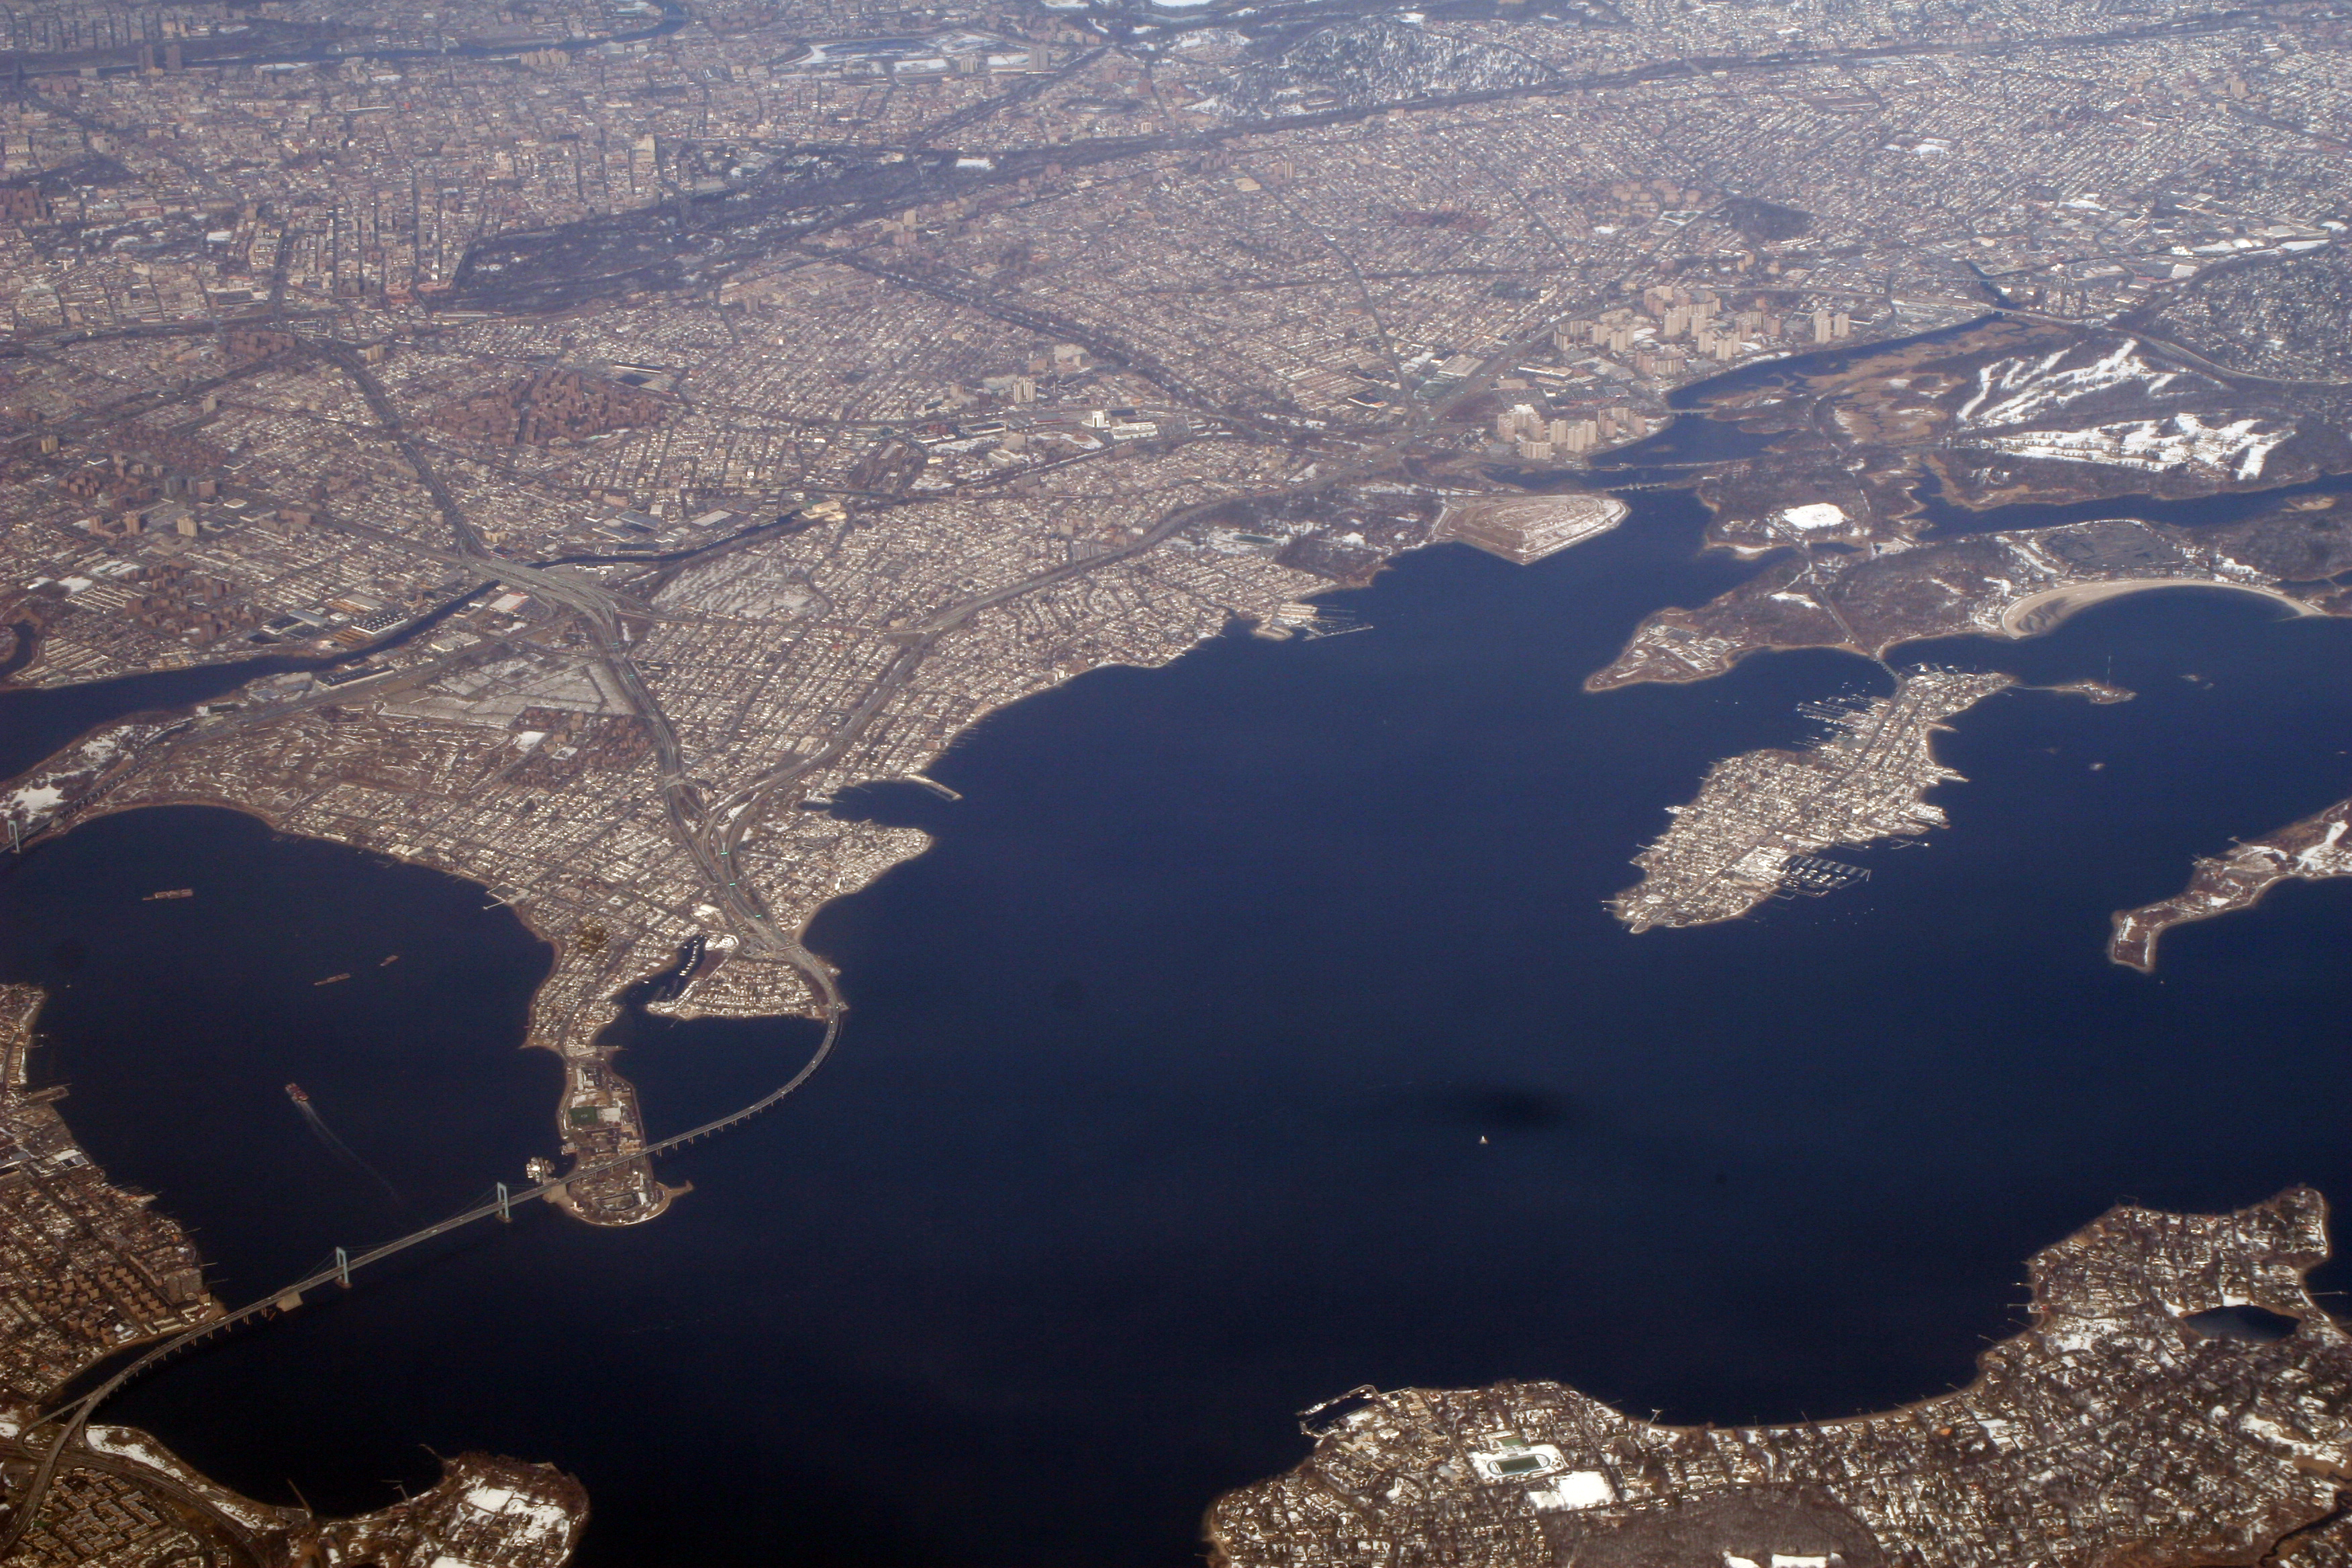 Link to original Long Island Sound image from Wikimedia Commons.